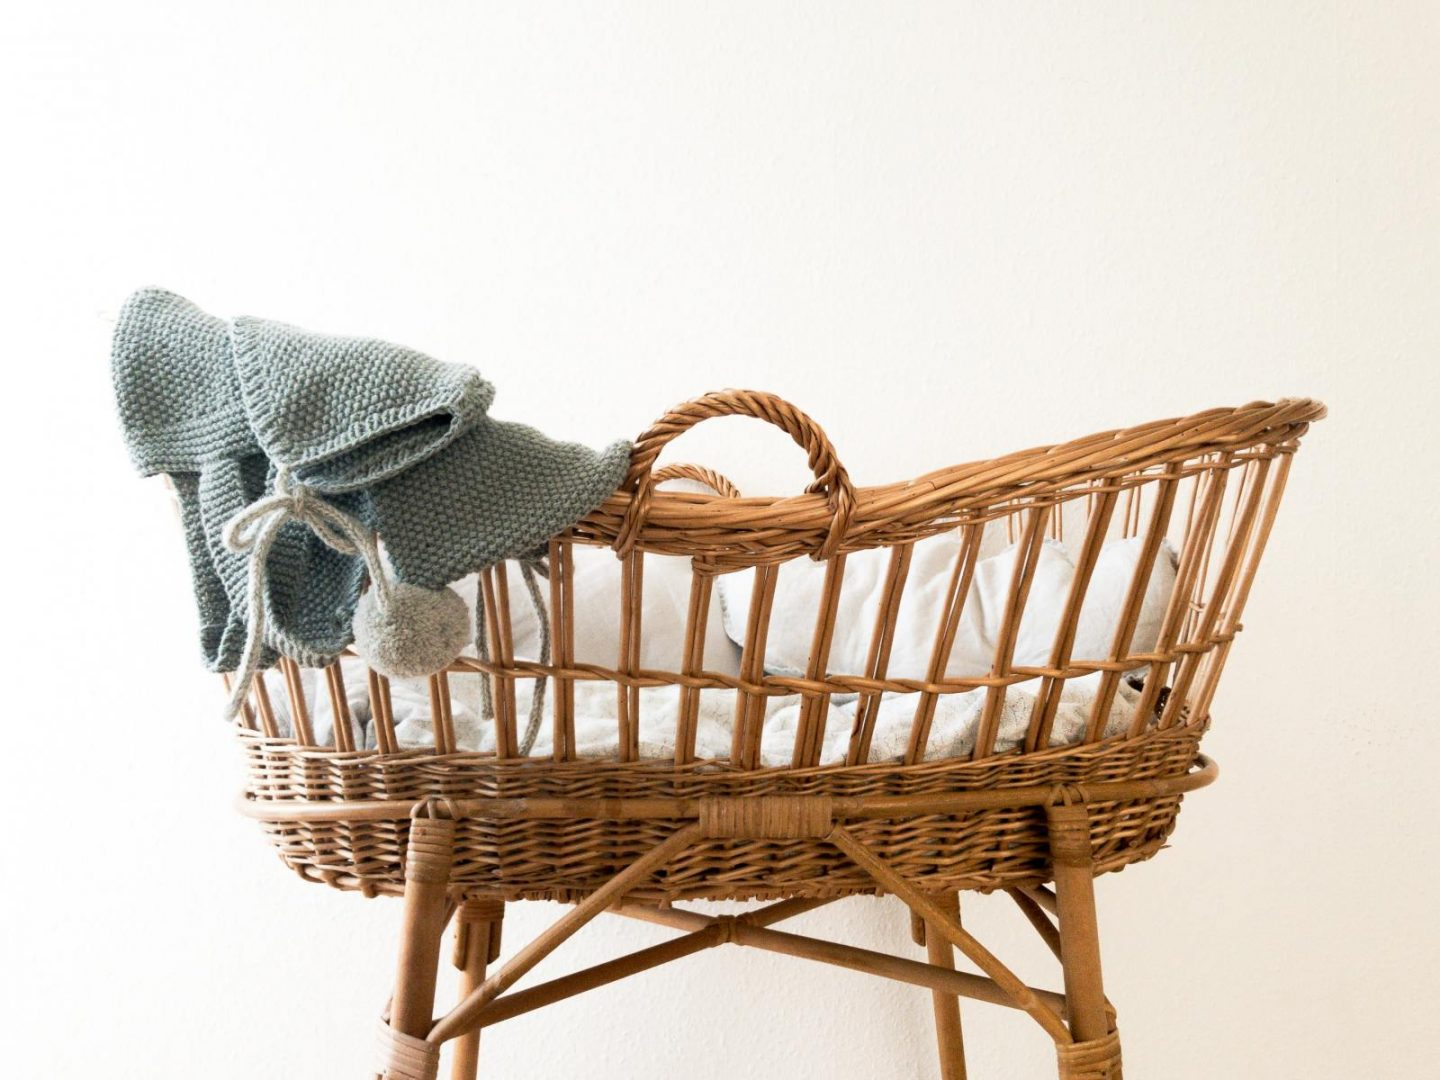 wicker basket with blue shawl draped on one end. Inside the basket is a white mattress and bedding.